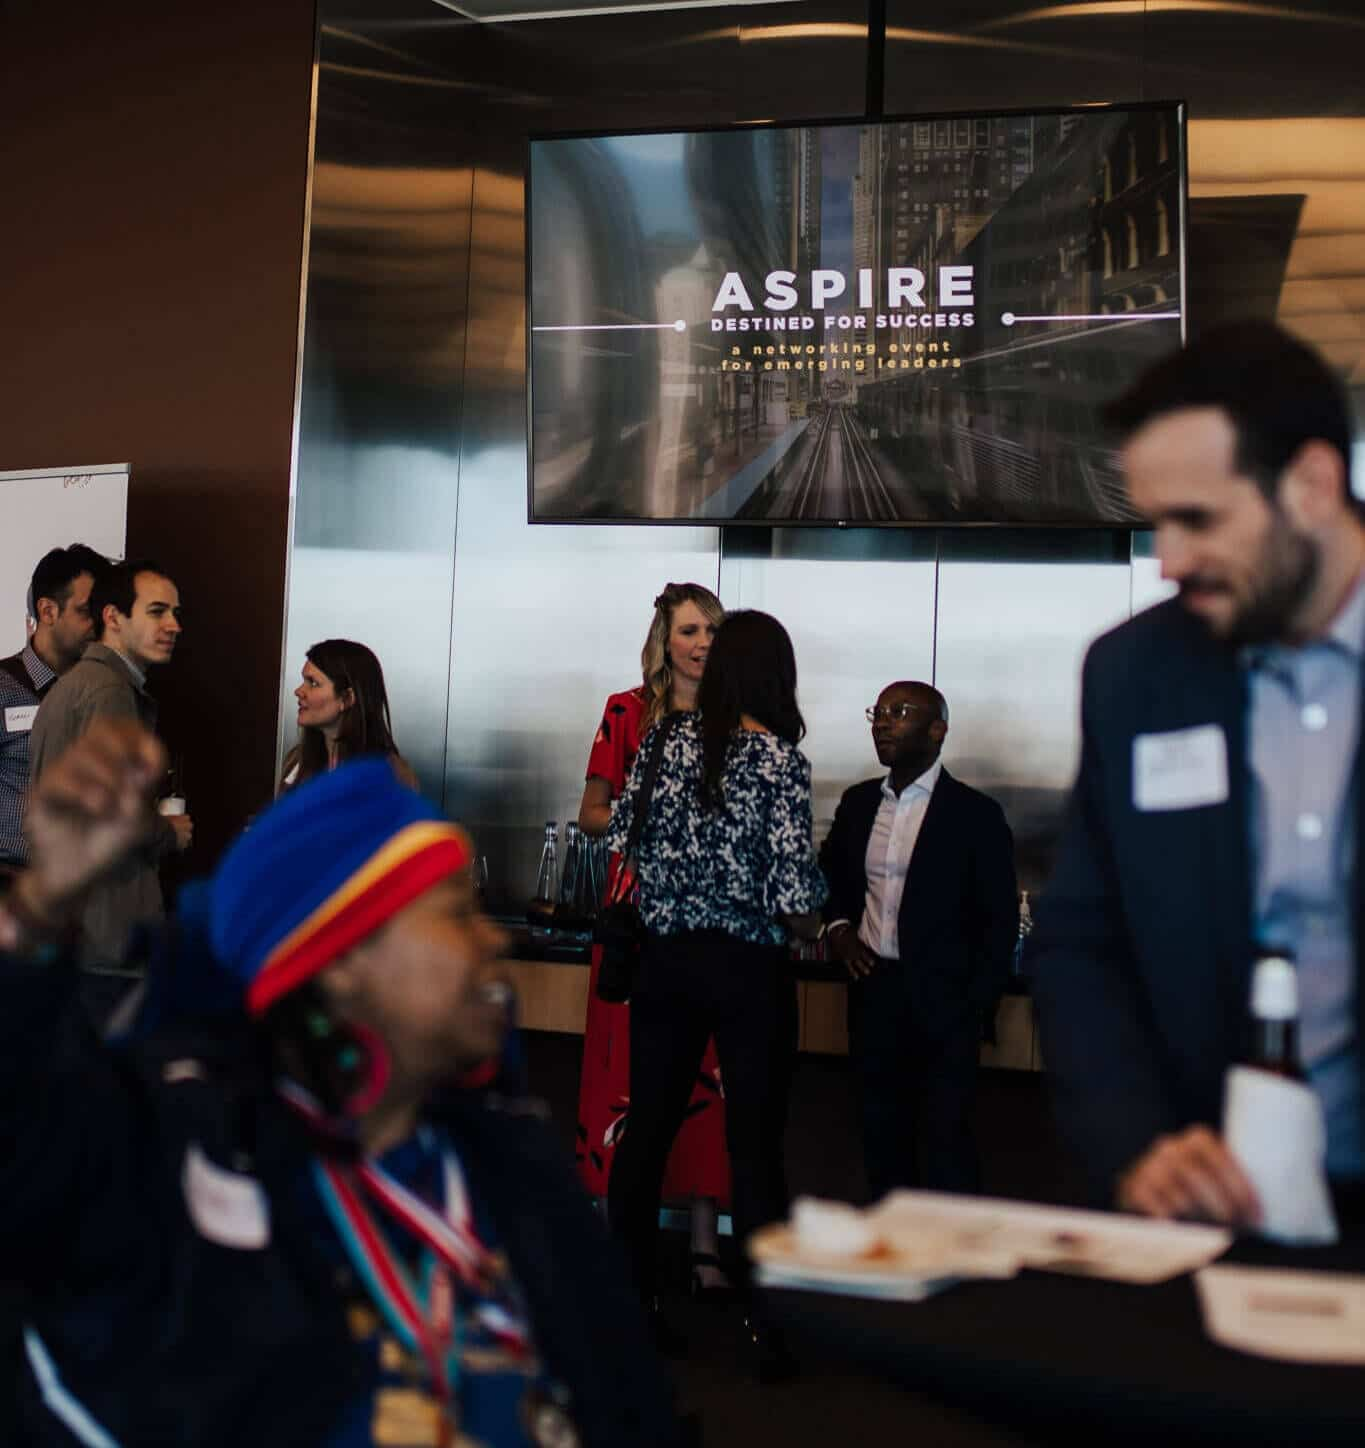 young professionals mingling at business networking event Aspire Breakthrough